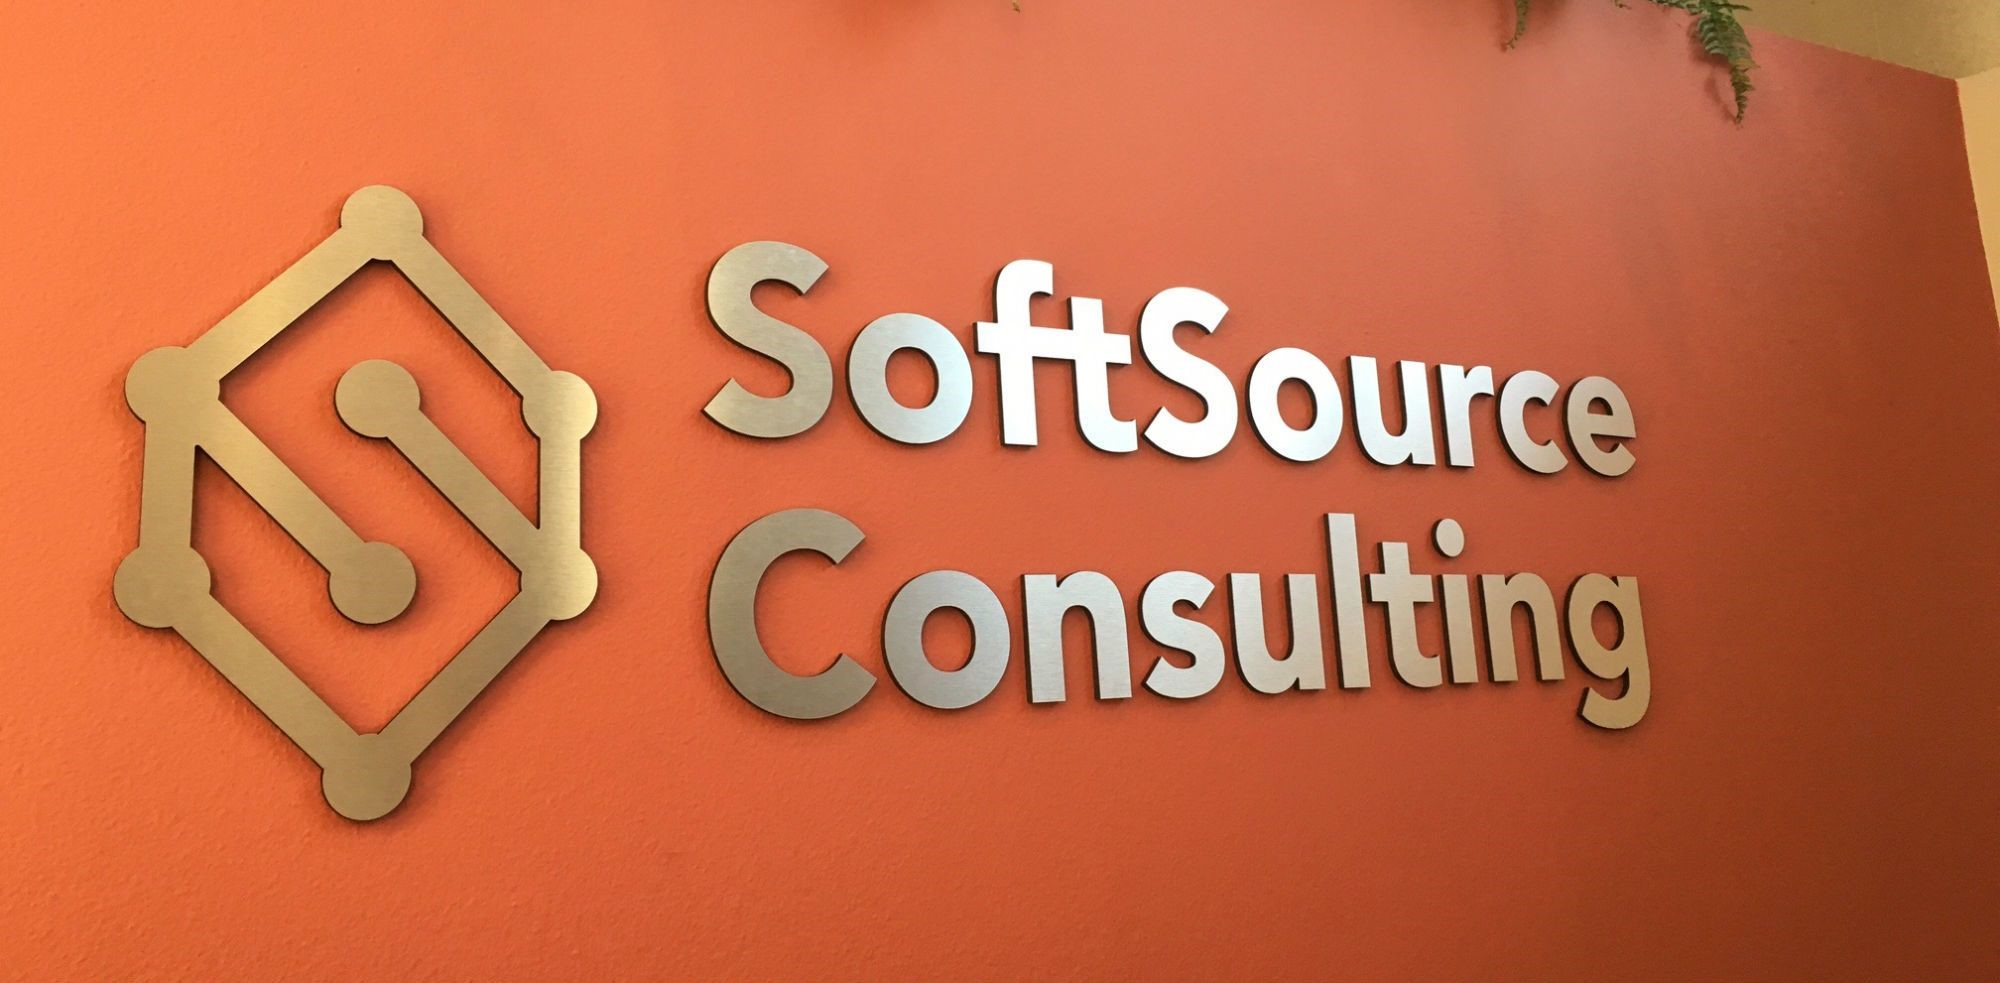 SoftSource Consulting Dimensional Logo Sign